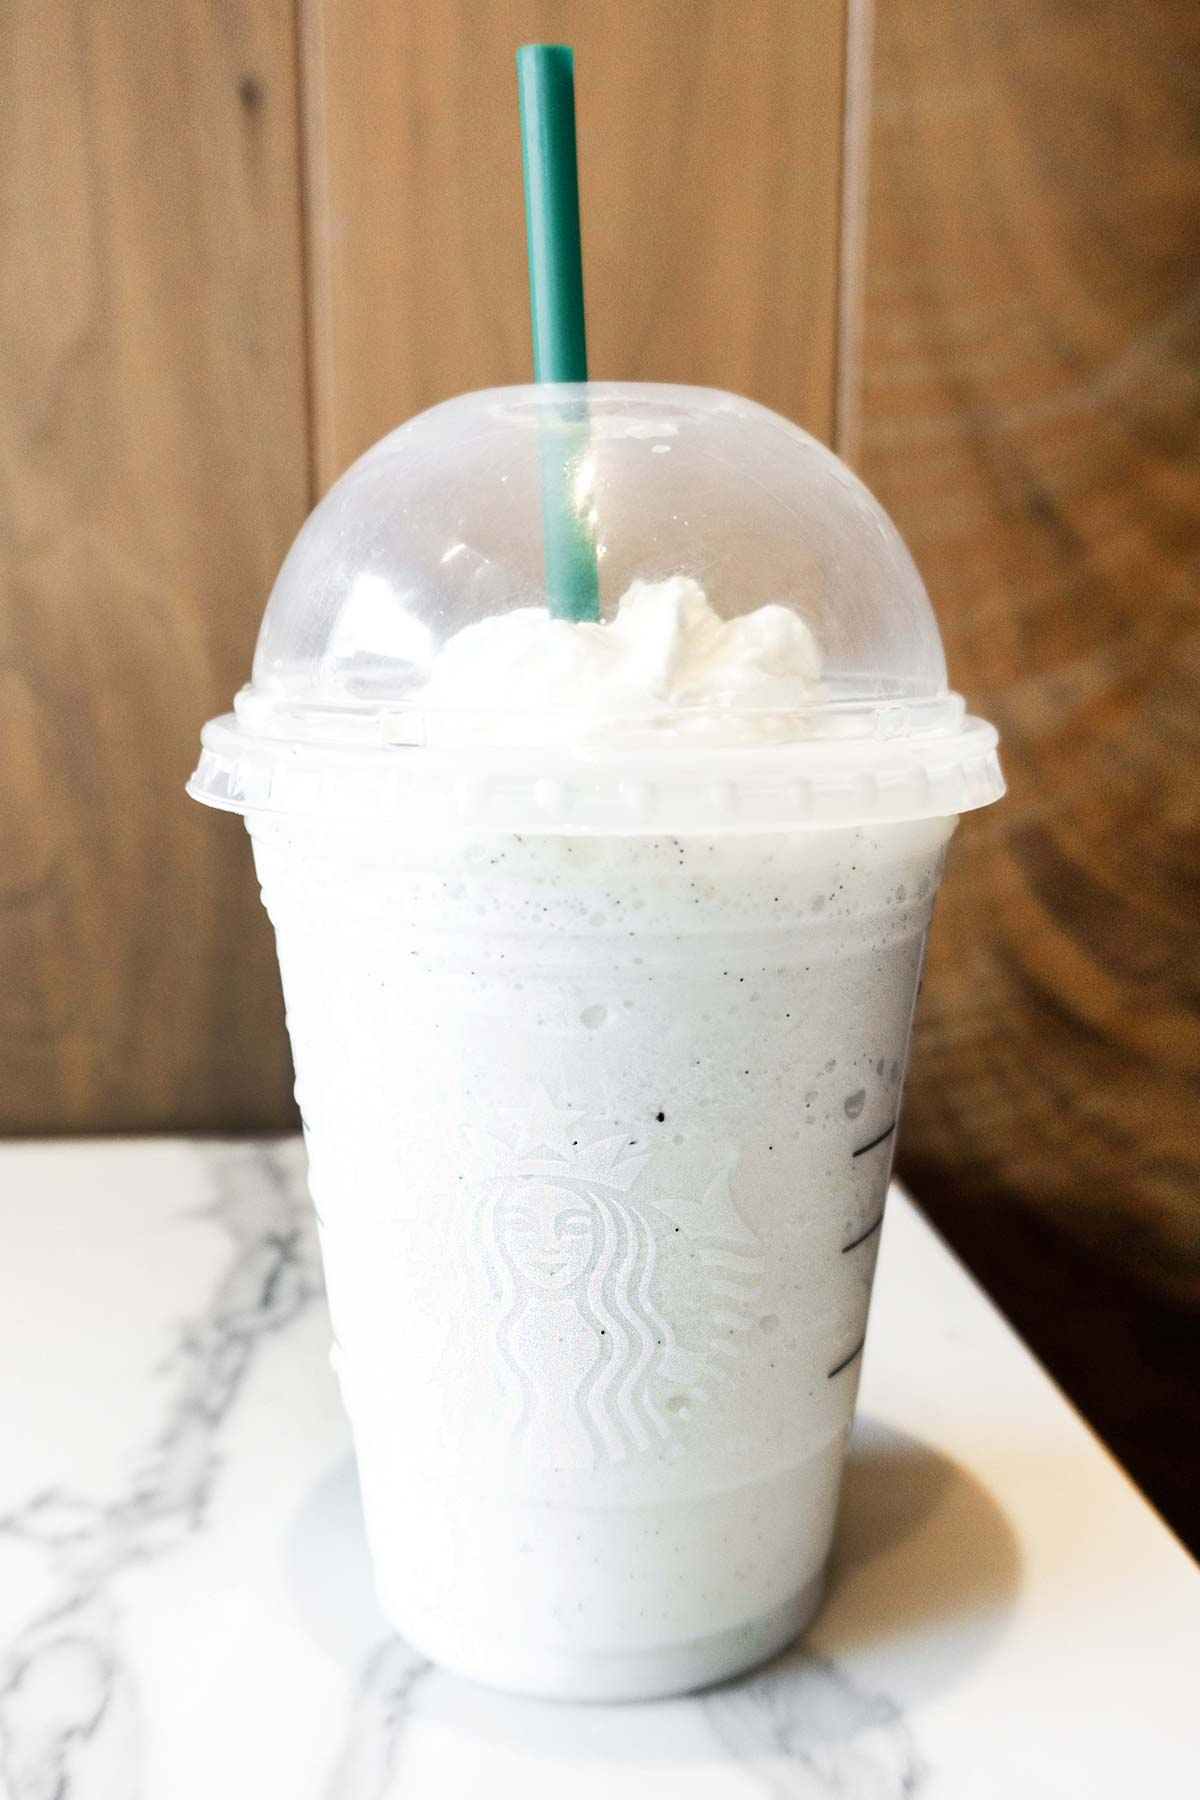 Starbucks Cotton Candy Frappuccino in a cup with whipped cream and a green straw.